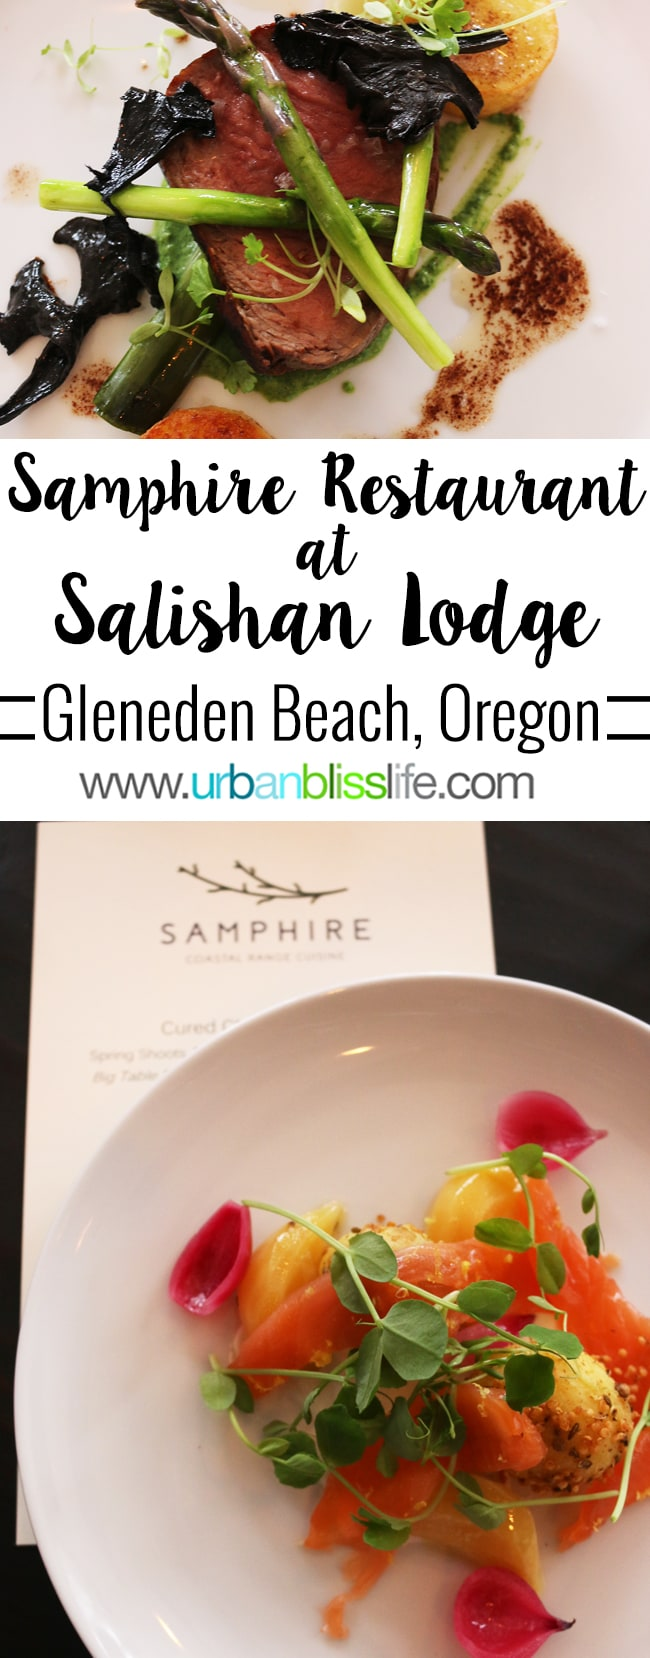 Salishan Lodge: Samphire Restaurant review on UrbanBlissLife.com